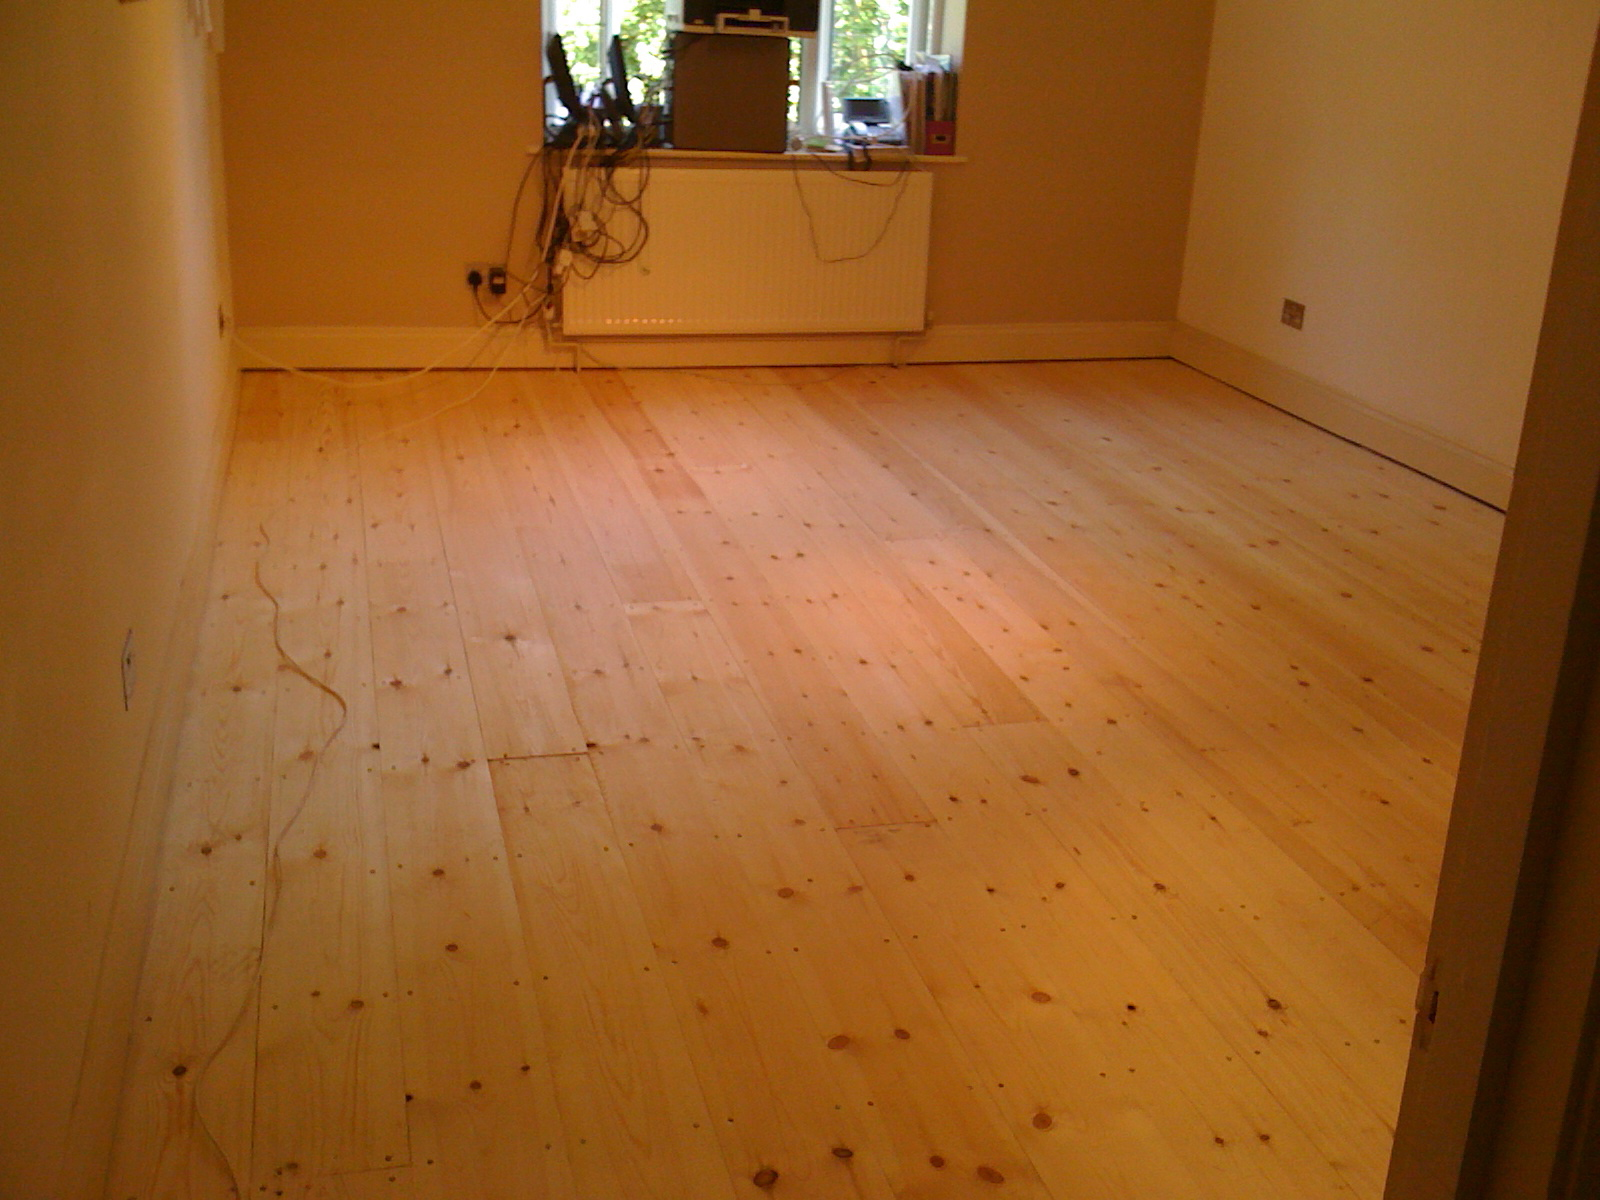 New floor boards to complete